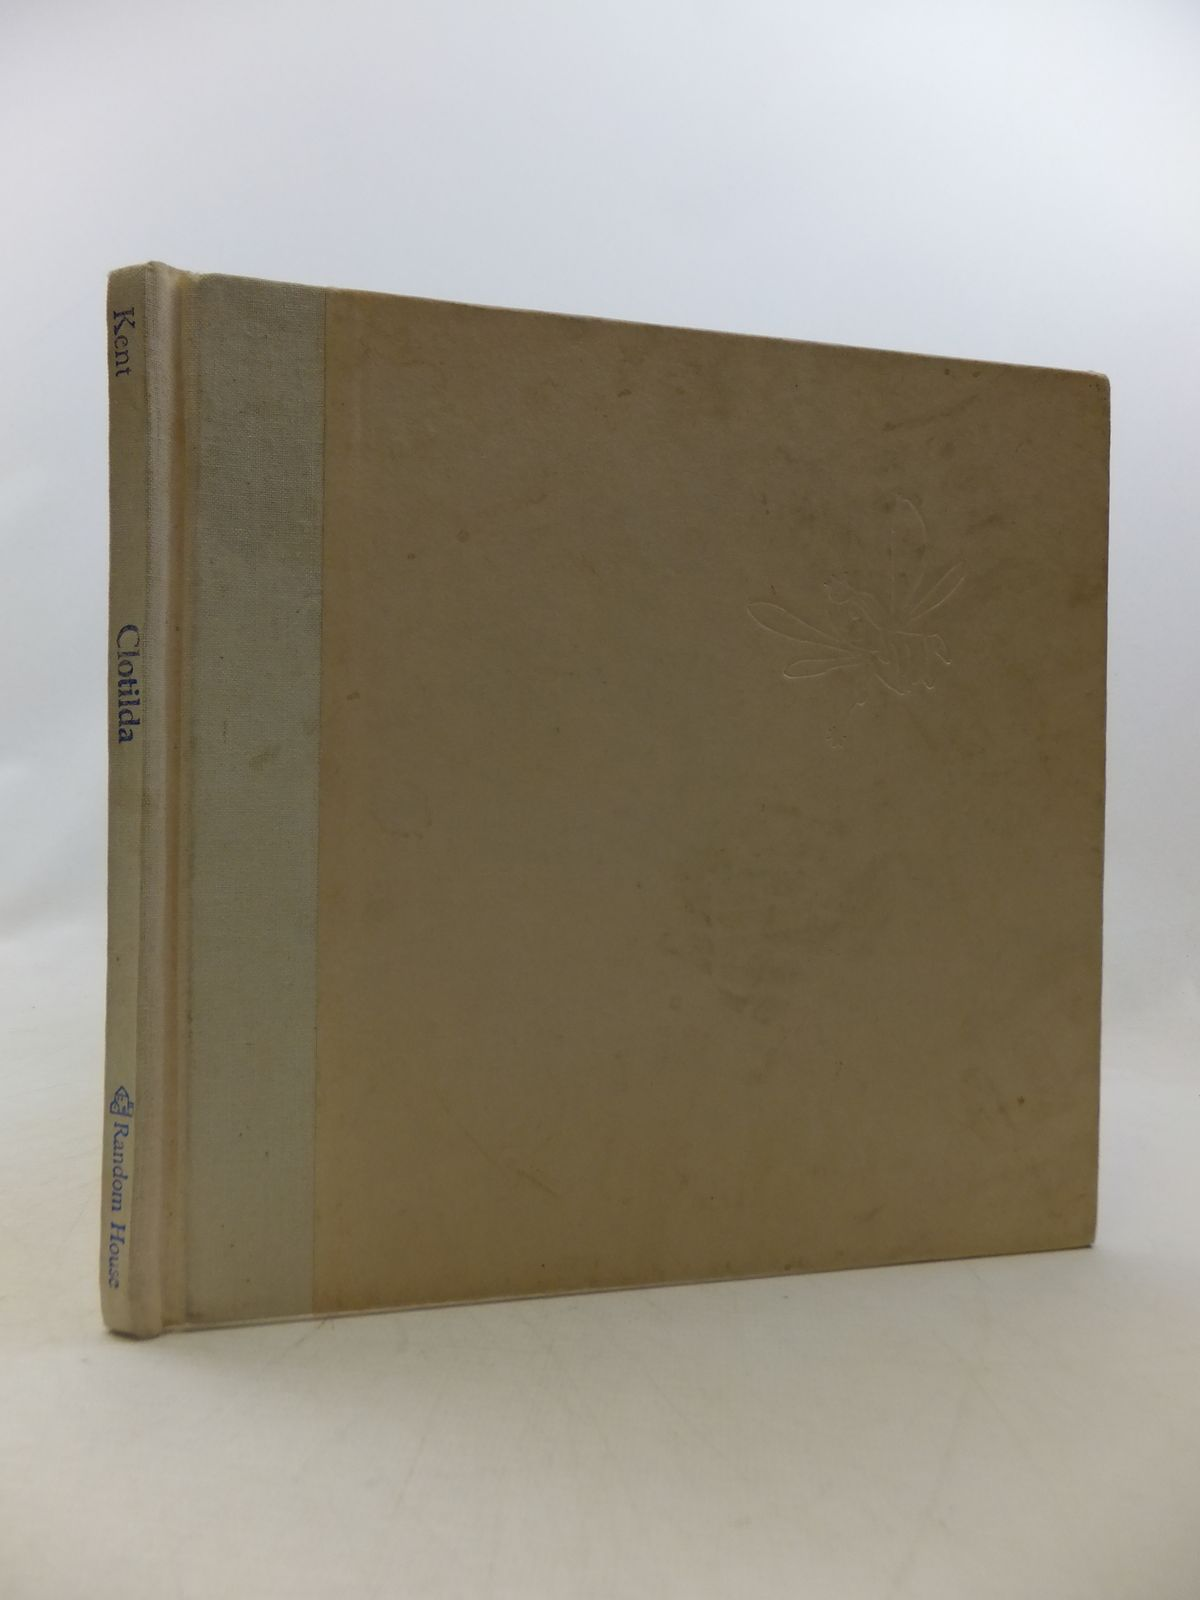 Photo of CLOTILDA written by Kent, Jack illustrated by Kent, Jack published by Random House (STOCK CODE: 1808863)  for sale by Stella & Rose's Books